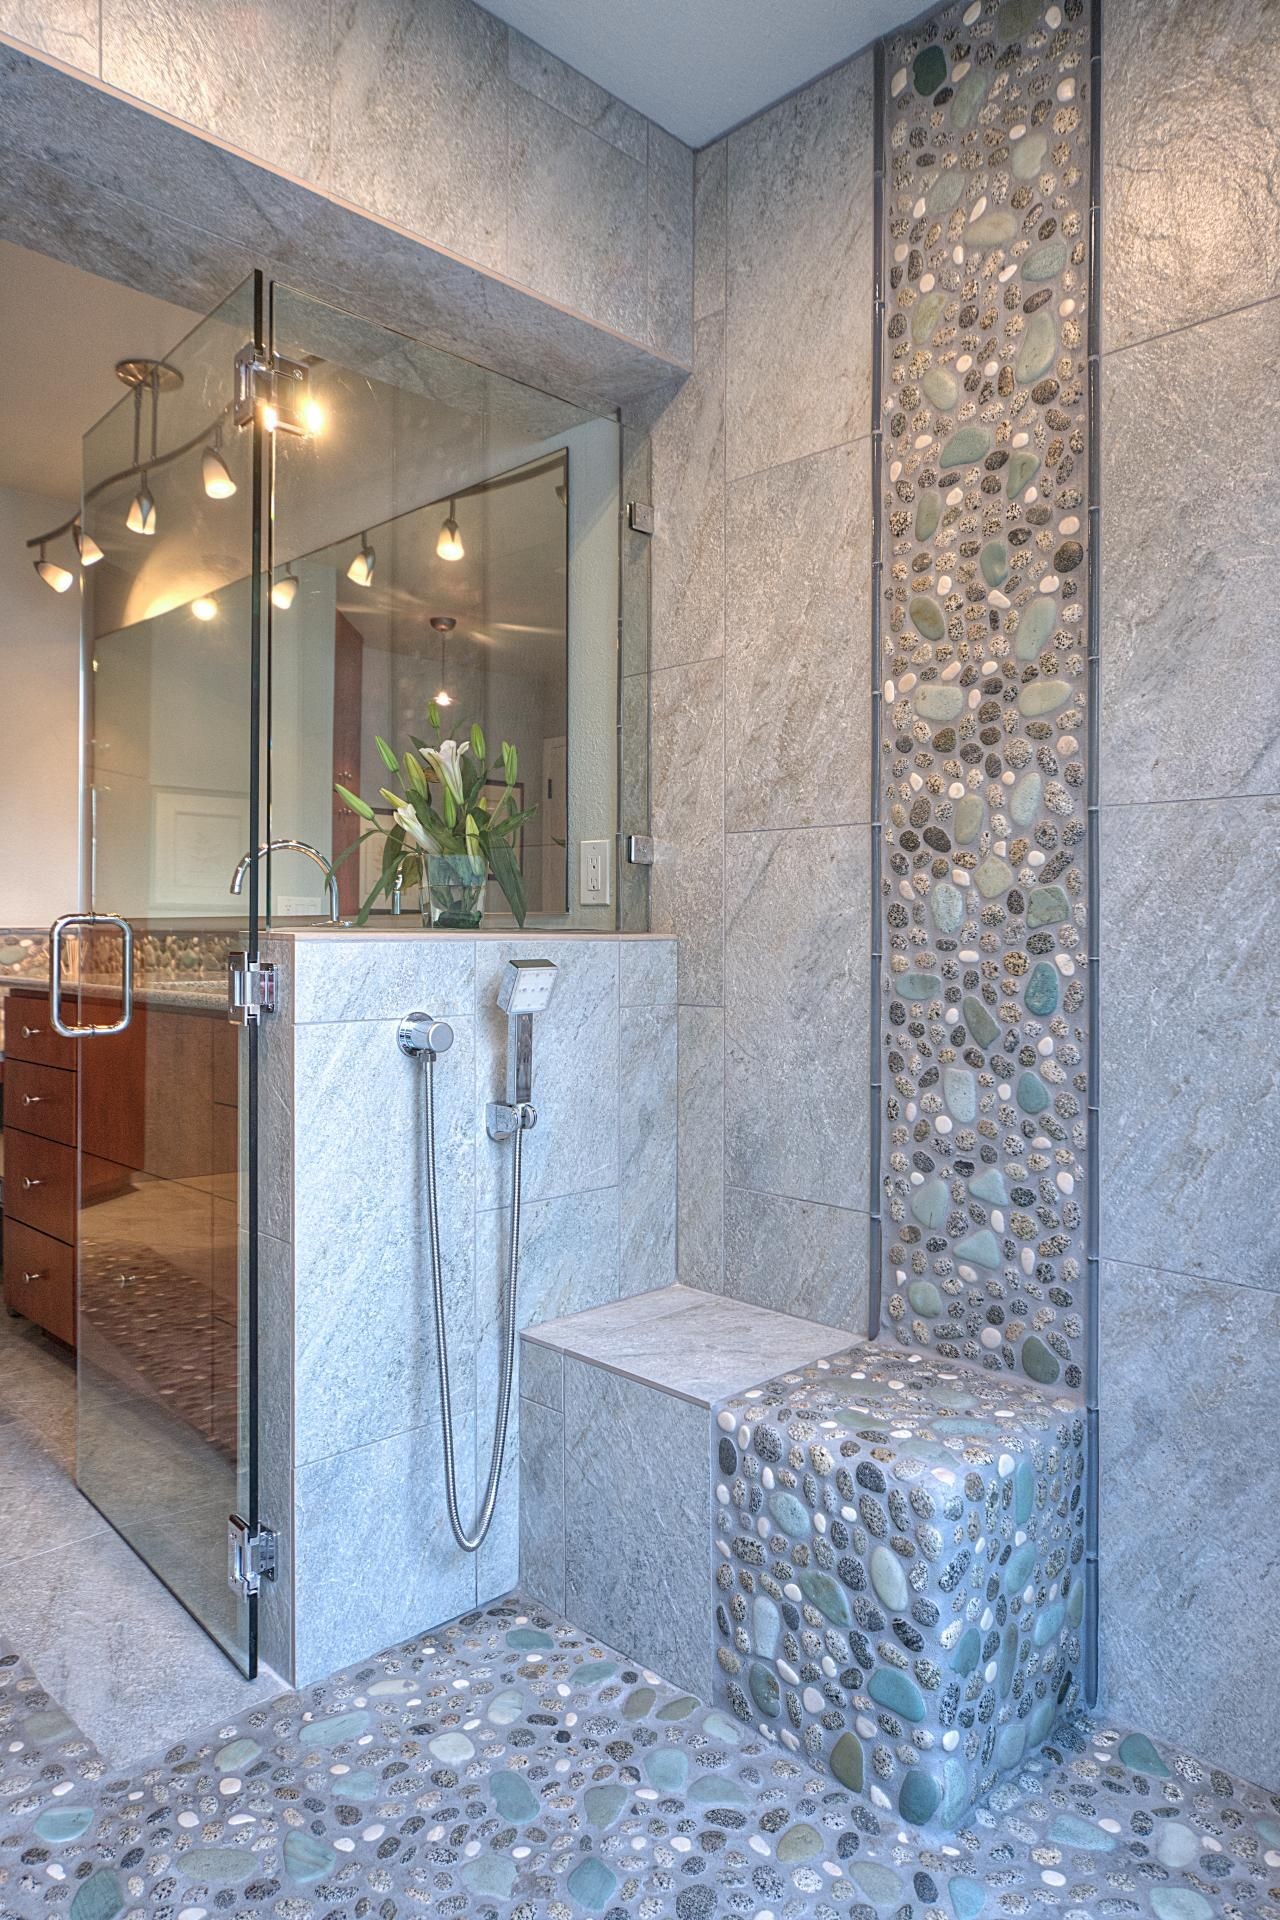 2015 NKBA Peoples Pick Best Bathroom Hgtv Sinks and Vanities